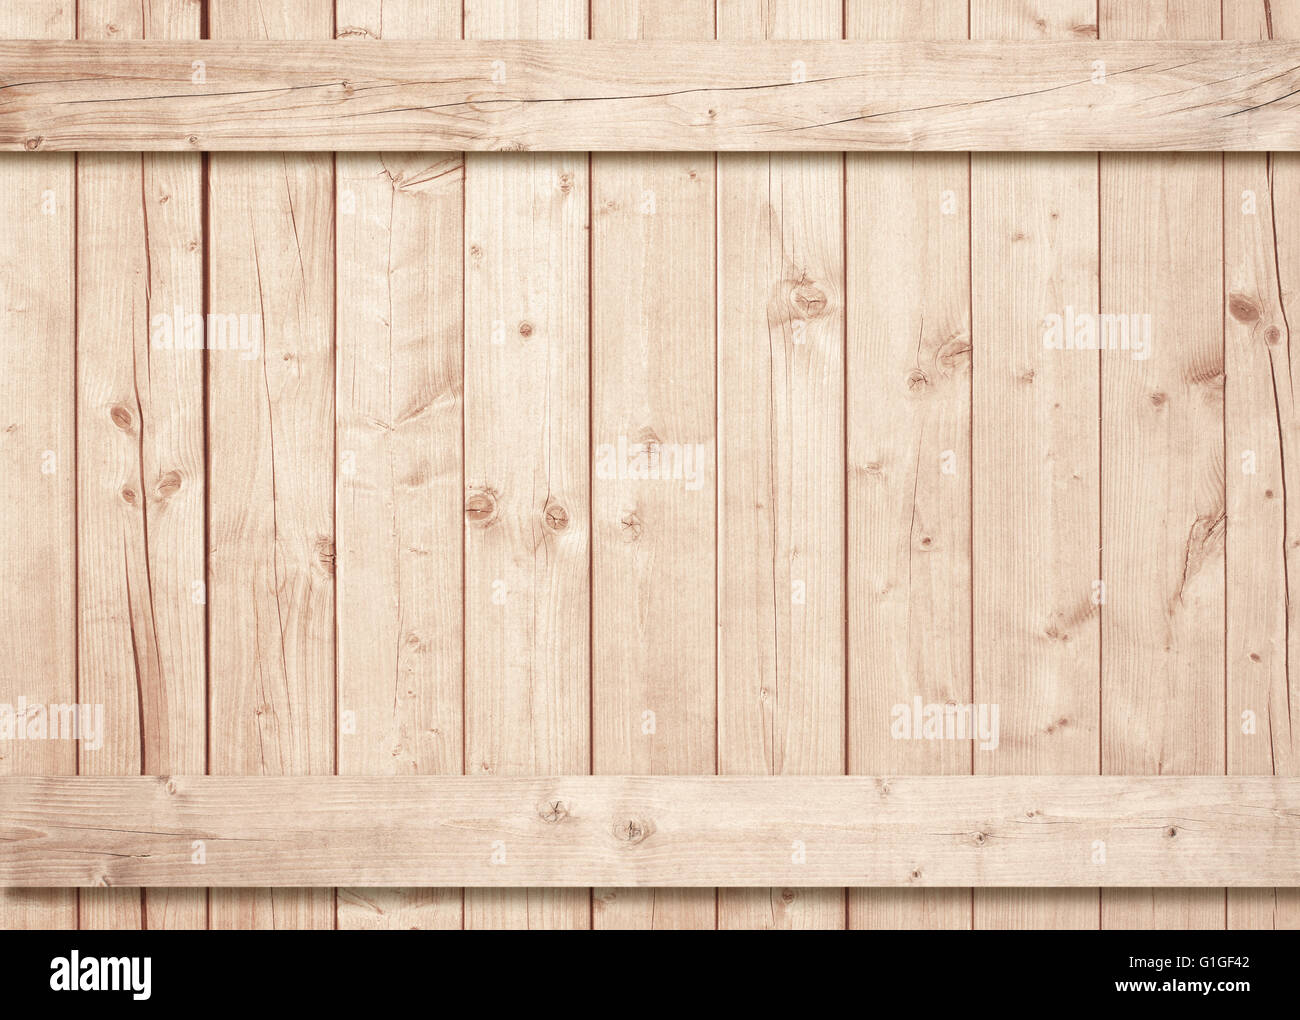 Horizontal Wood Fence Texture light brown wooden wall, fence texture with horizontal and